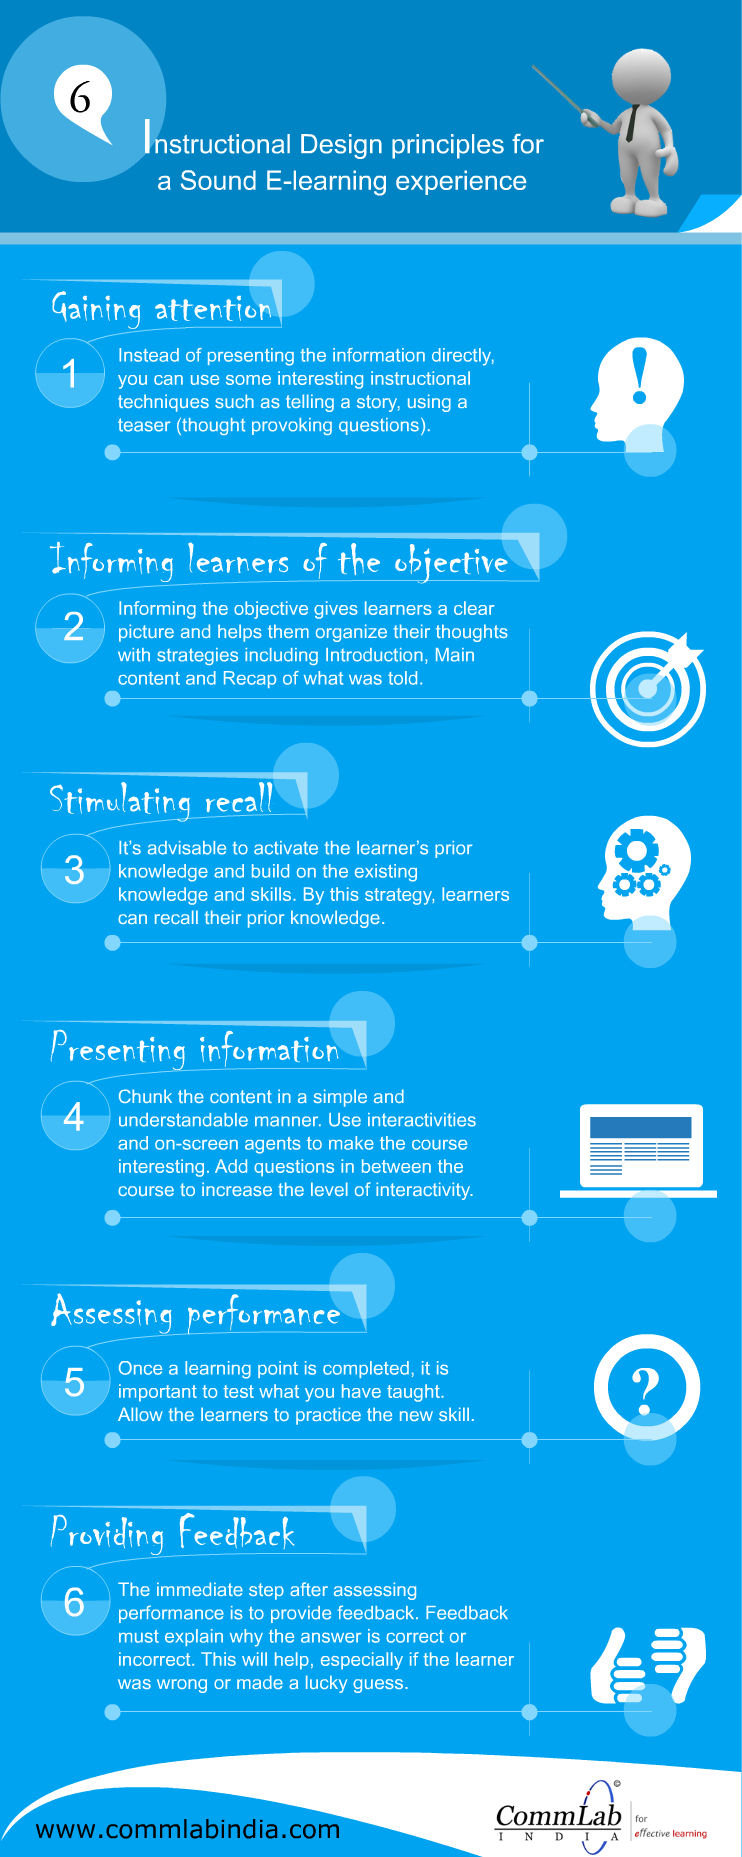 6 Instructional Design Principles For a Sound Learning Experience - An Infographic